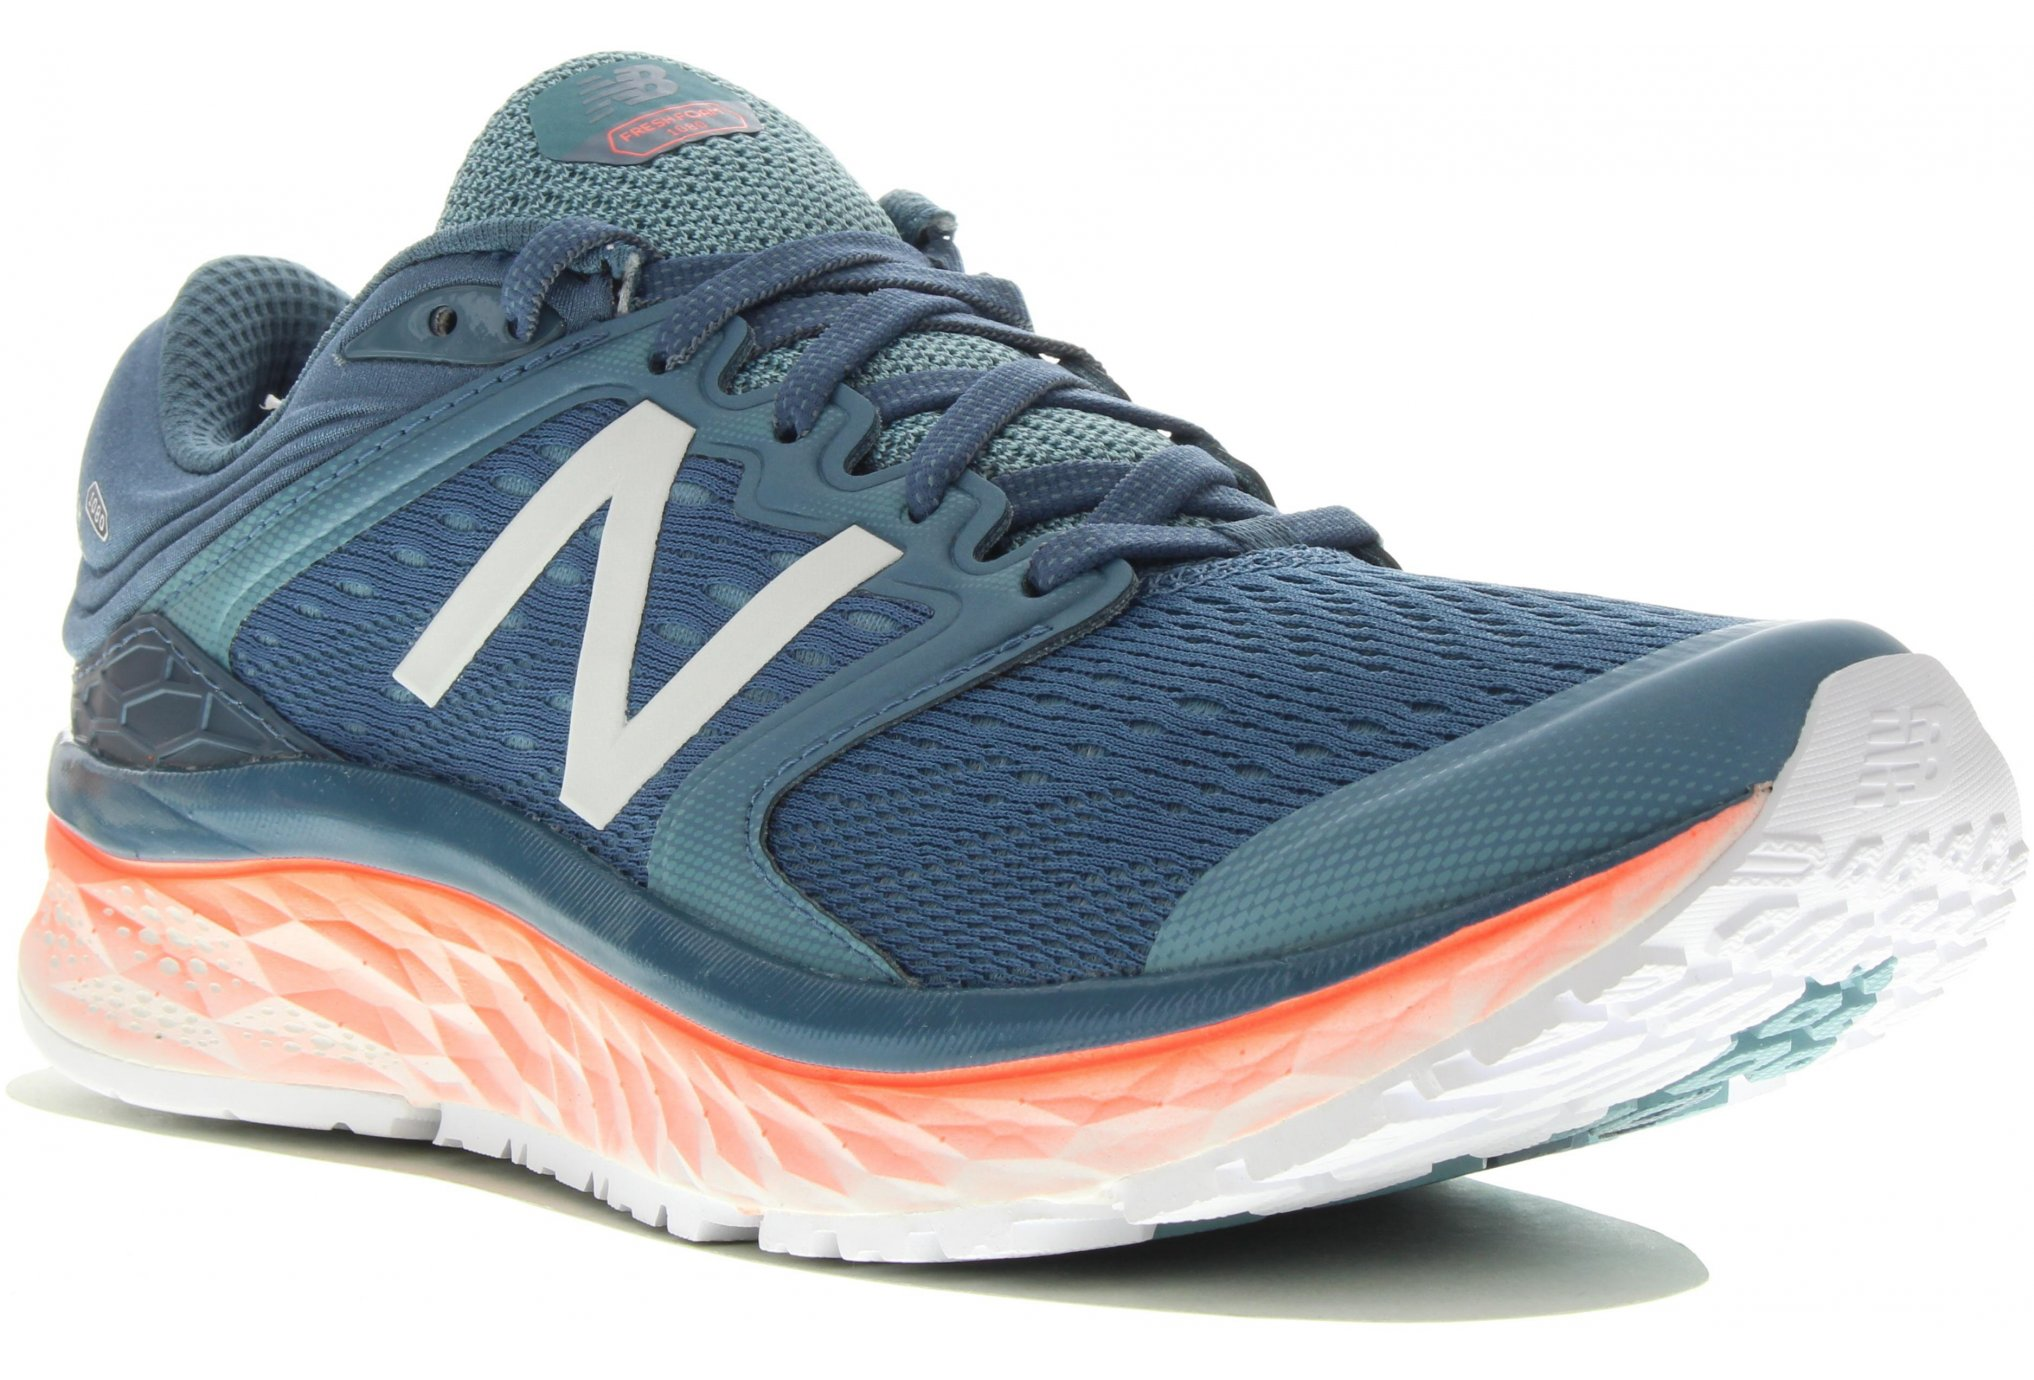 New Balance Fresh Foam 1080 V8 B Chaussures running femme